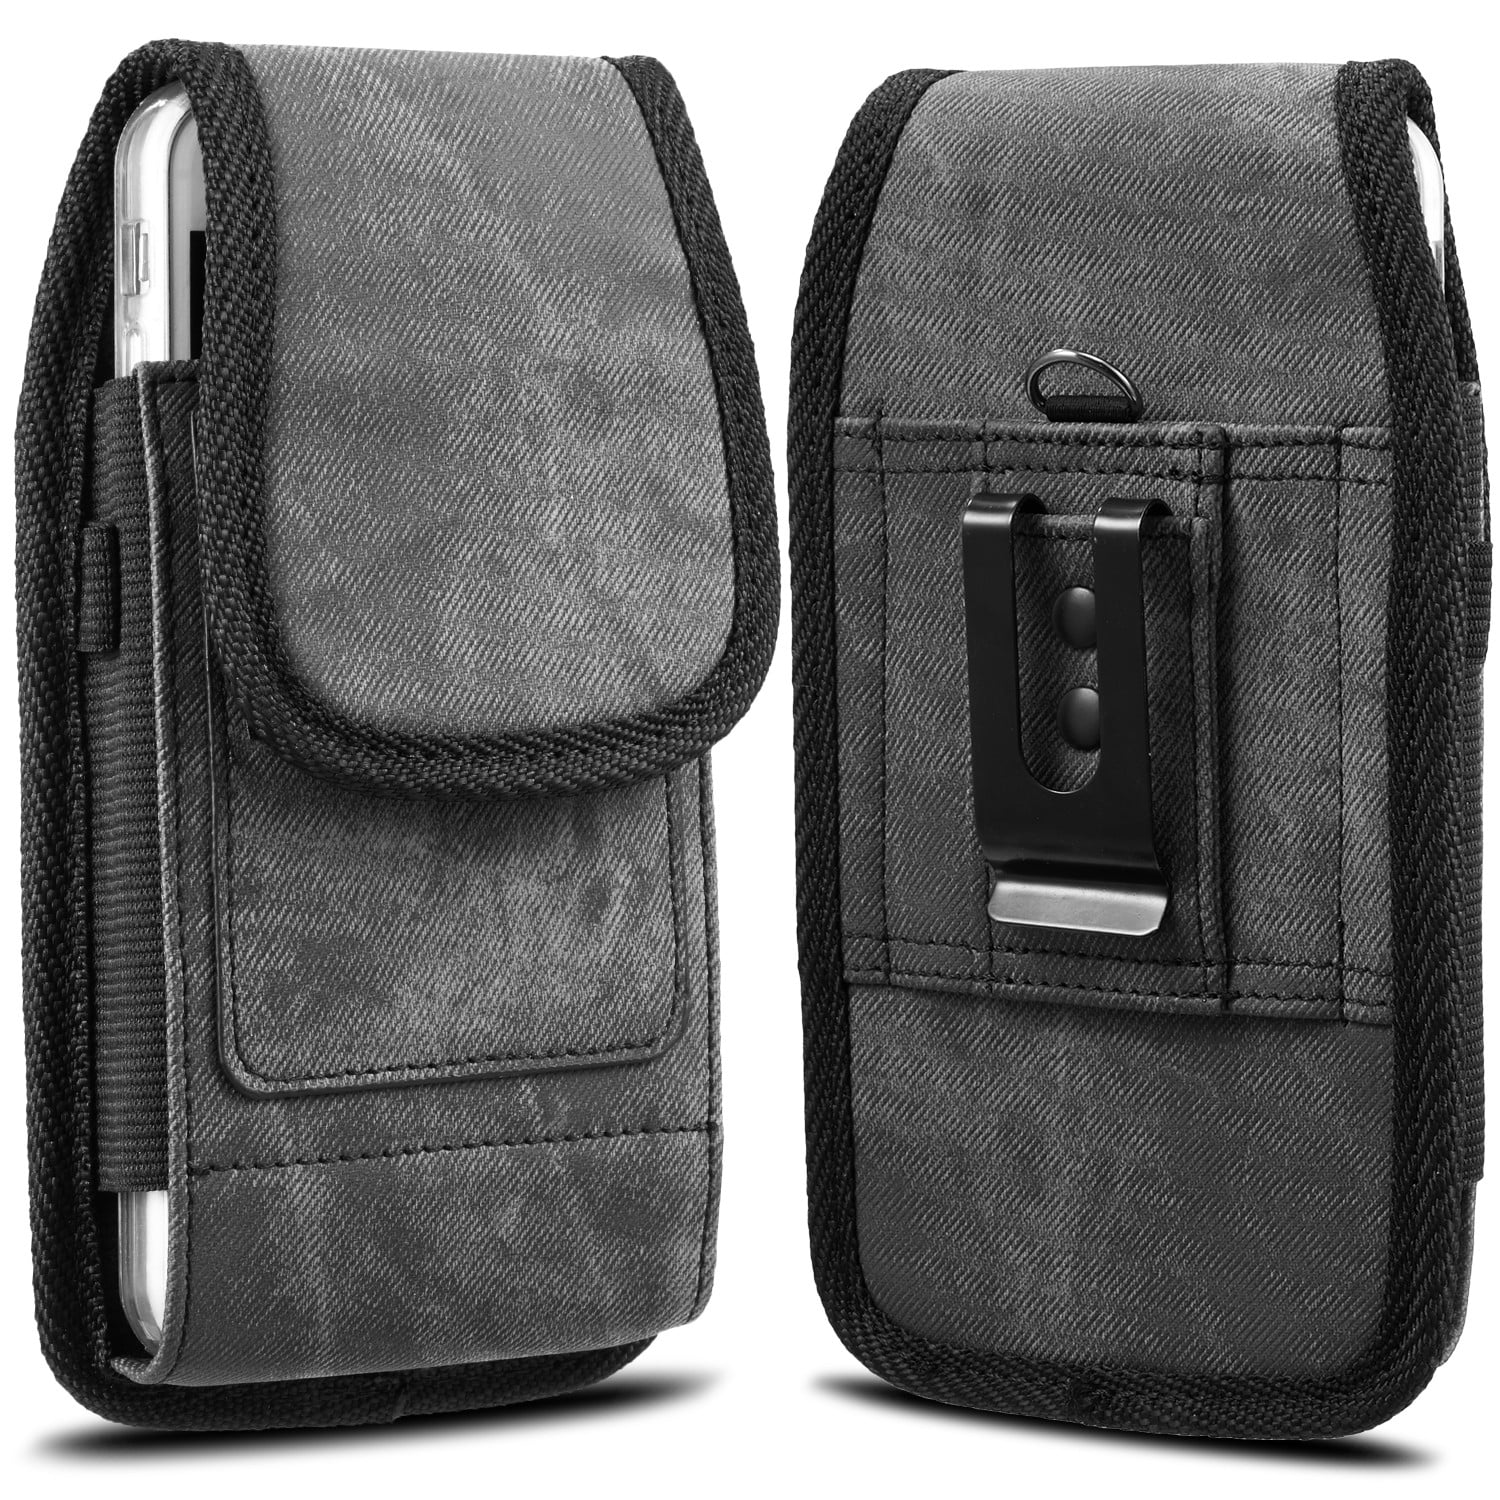 For iPhone iPhone Xs Max 11 Pro Max Vertical Pouch